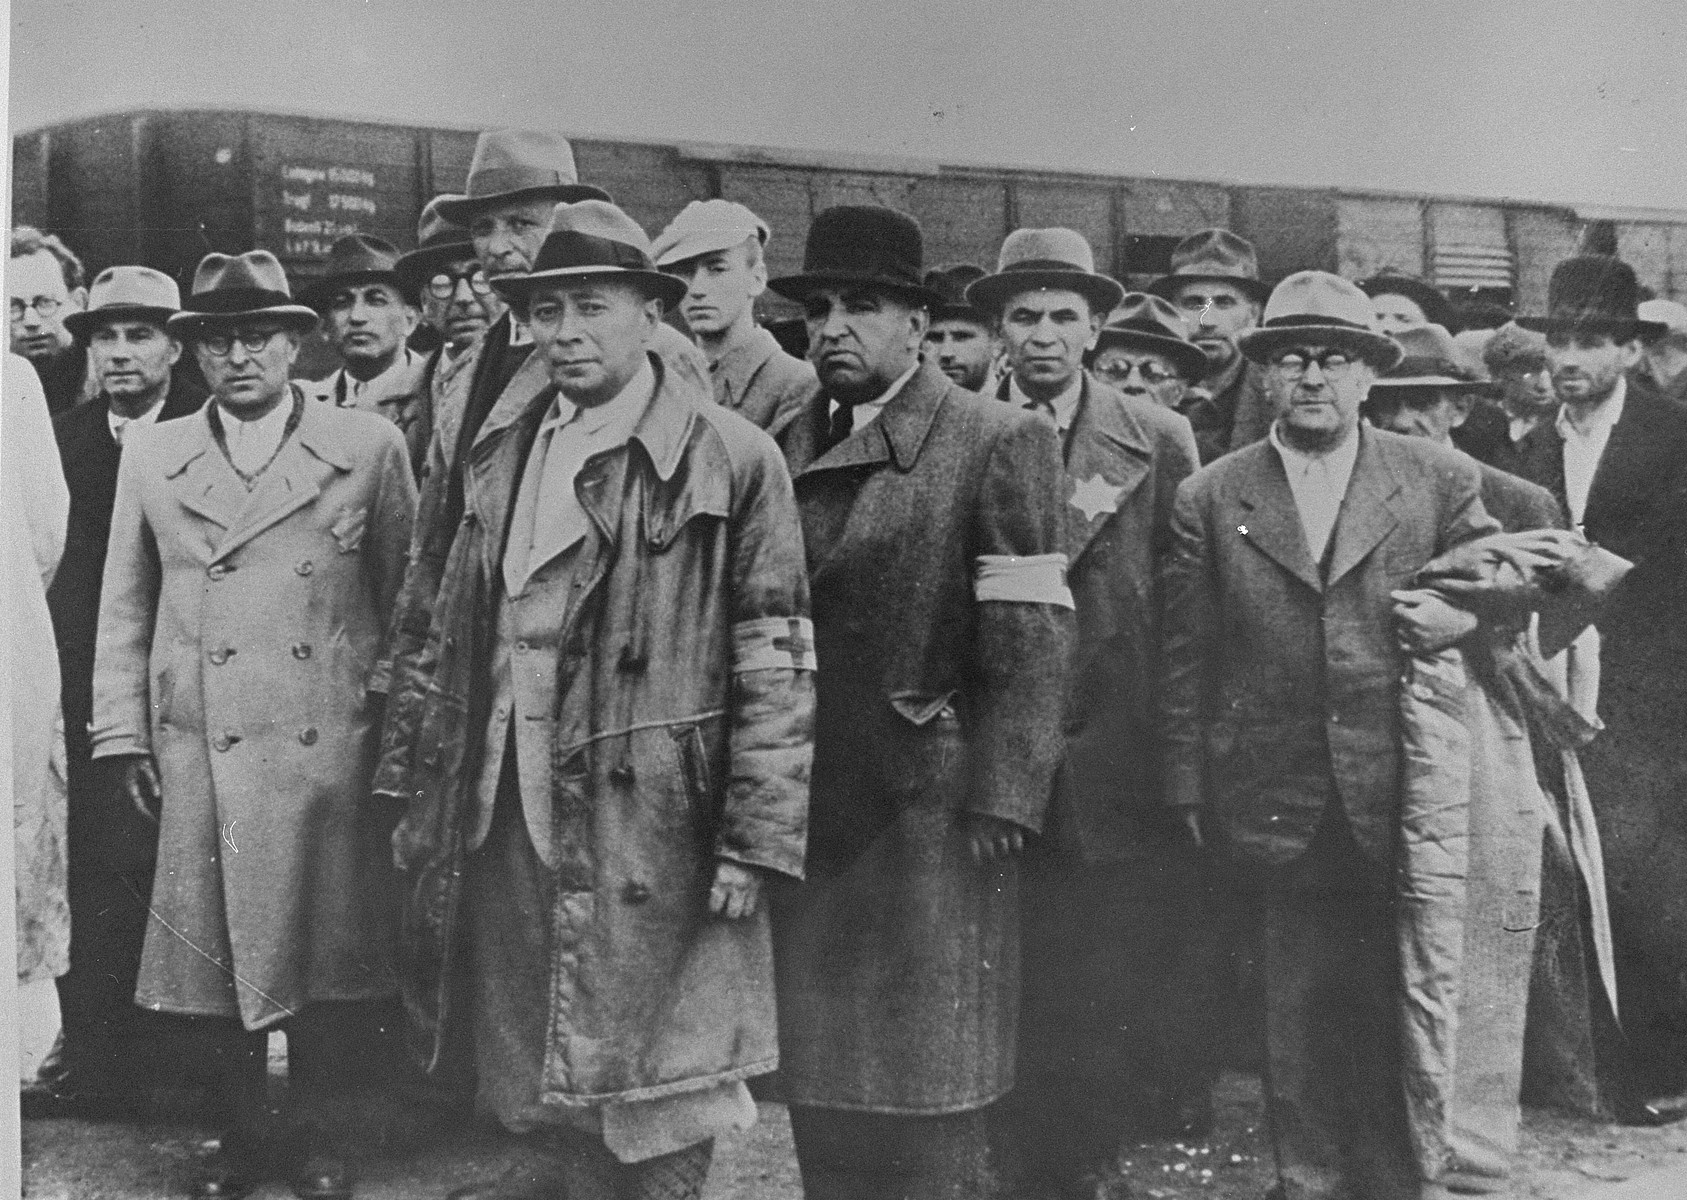 Jewish men from Subcarpathian Rus await selection on the ramp at Auschwitz-Birkenau.   Among those pictured are: Weishouse, a pharmacist, (second from the left); Dr. Kellerman (next to Weishouse); Adolf Abraham (wearing glasses behind Kellerman);. Gyury Kellerman (in a white hat); Istvan Balasza, a pharmacist (front row, right).  All are from the town of Tecso.  Also pictured is Ludwig Granat (center) wearing an armband and black hat.  The only known to have survived is Istvan Balasza.